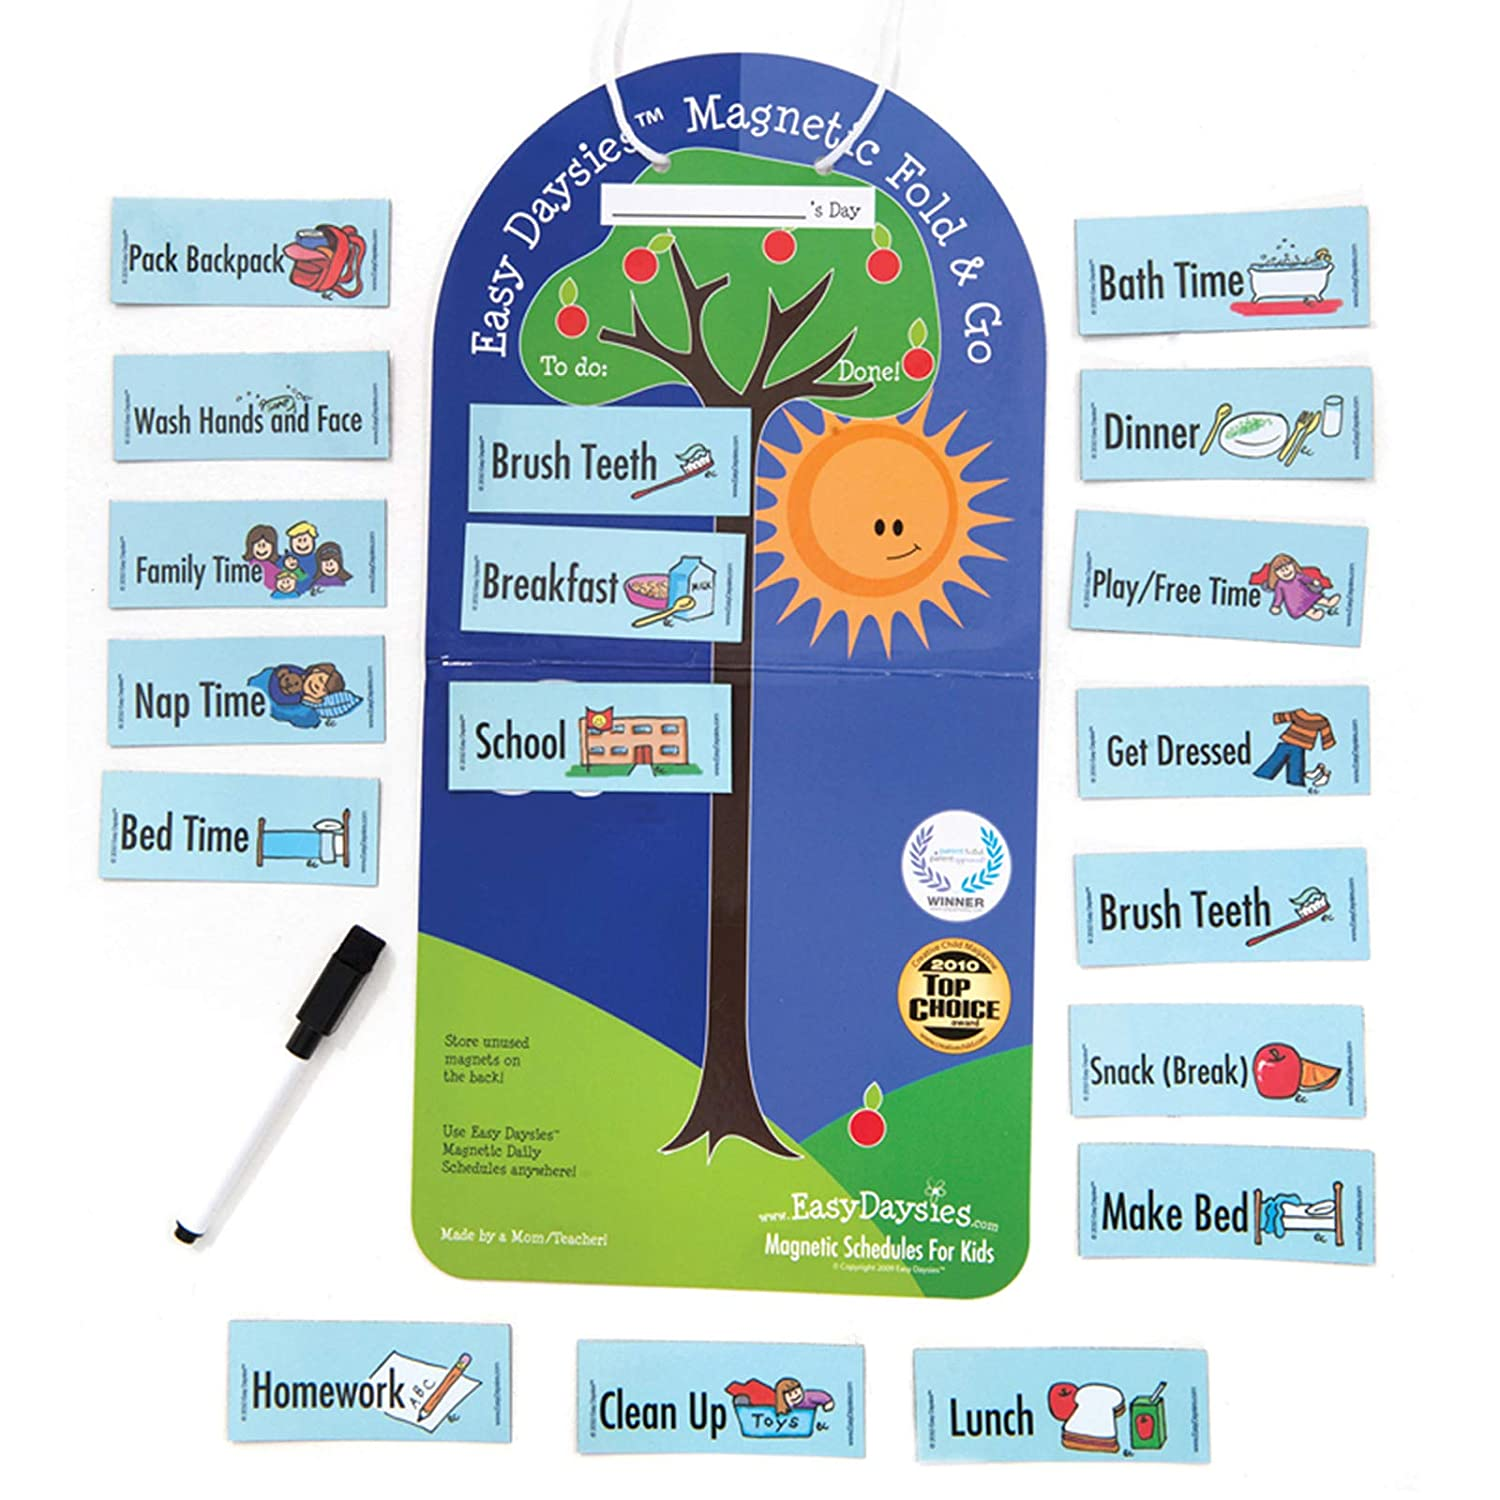 Easy-Daysies Magnetic Schedule Board Starter Kit, Includes Fold and Go  Board and 18 Magnets, As Seen on Dragon's Den TV Show (96021)